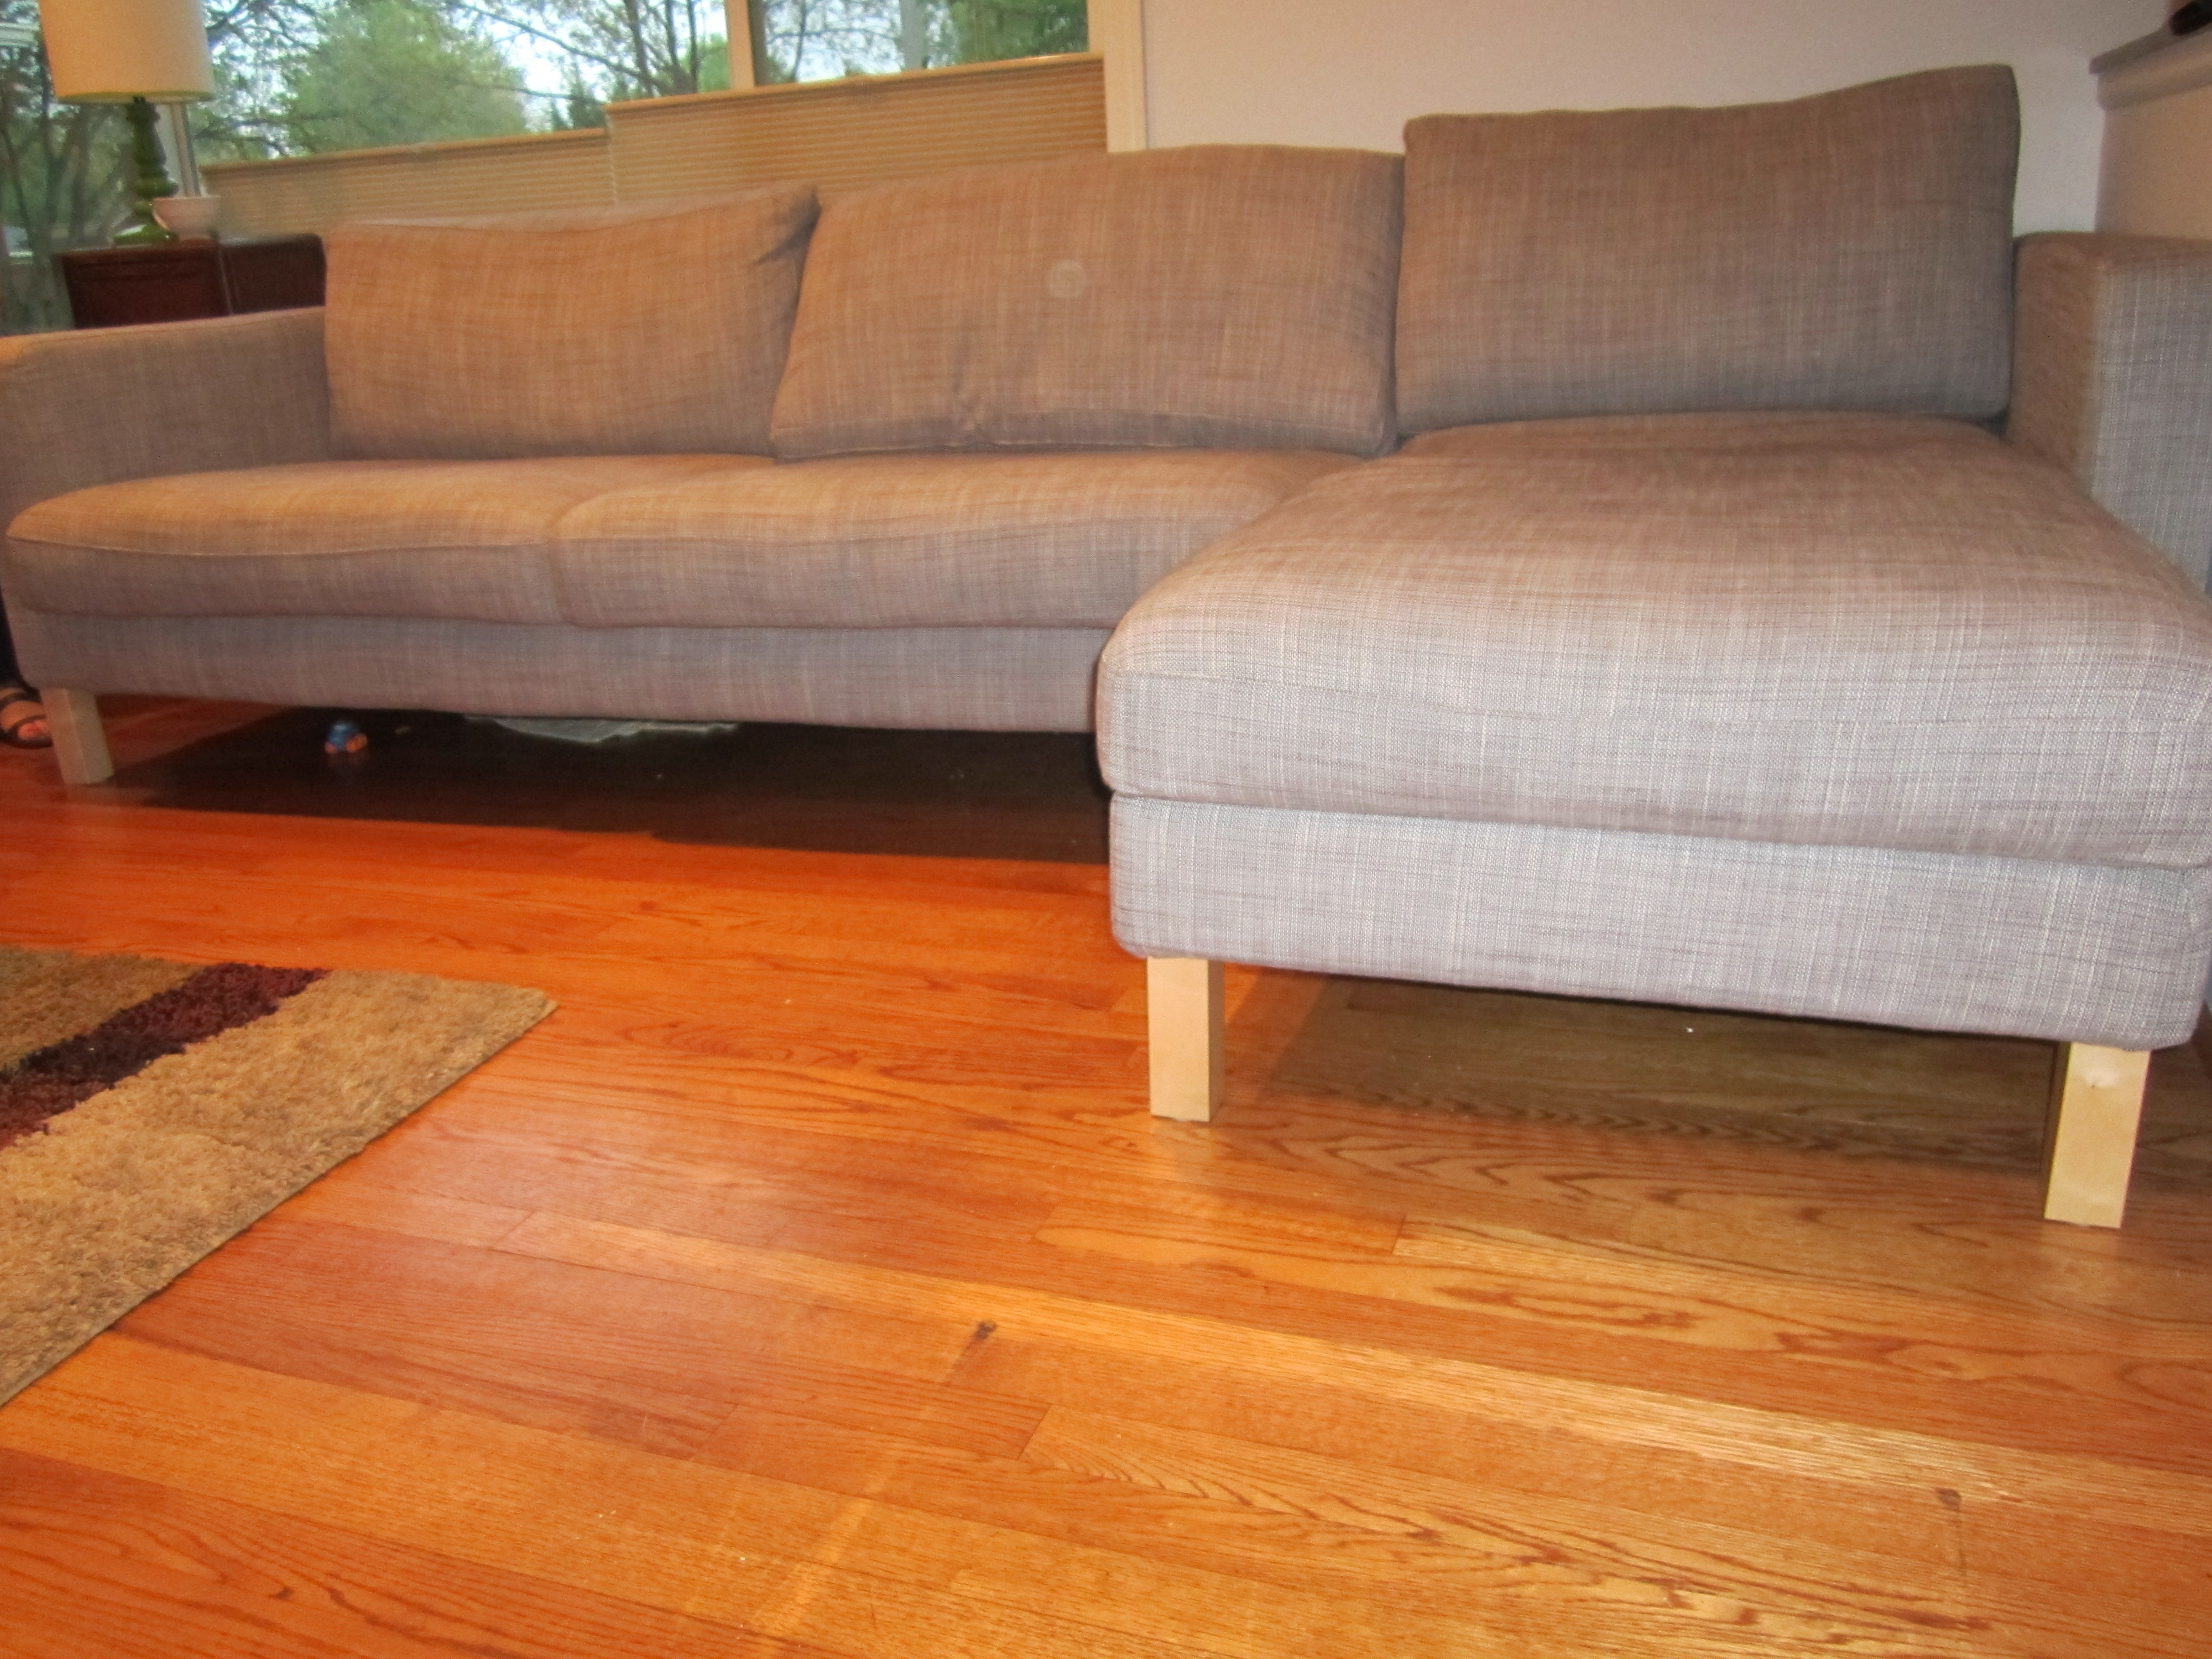 Most Popular Ikea Karlstad Couch Hack – My Mid Century Modest Ranch Make Over For Ikea Karlstad Chaises (View 8 of 15)